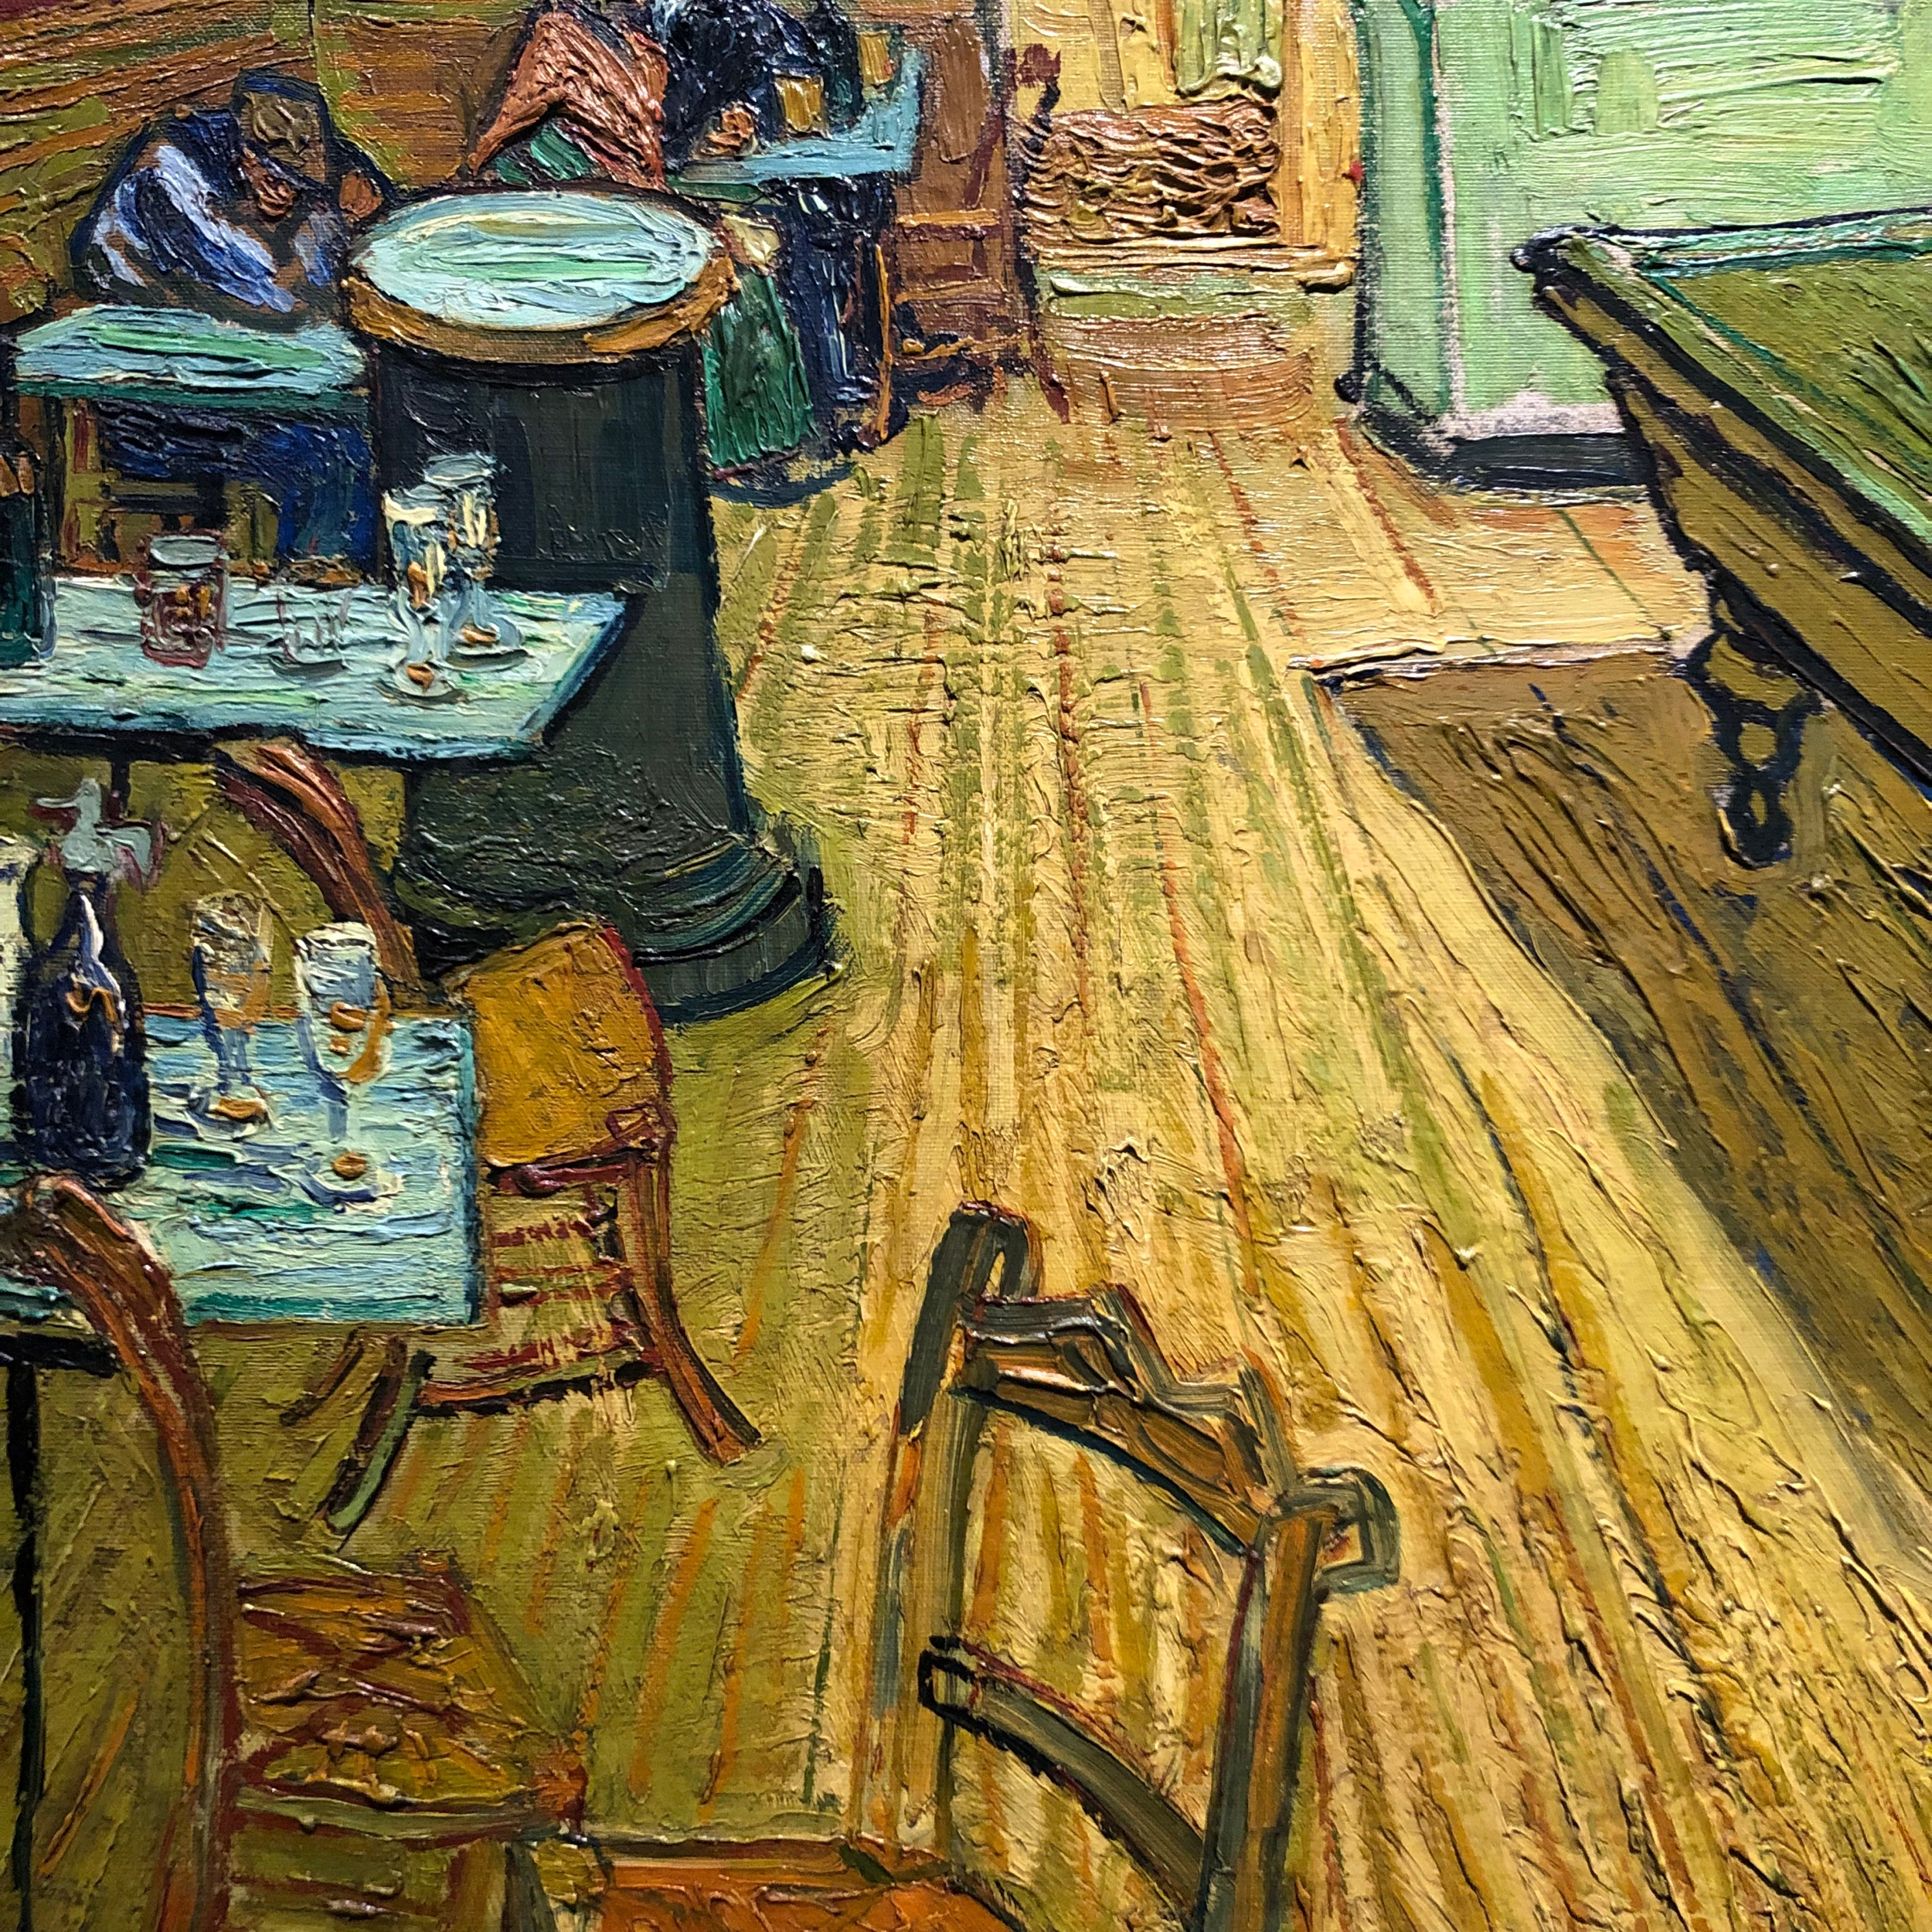 A detail from  The Night Café , showing abandoned tables and a drinker with his face in his arms.